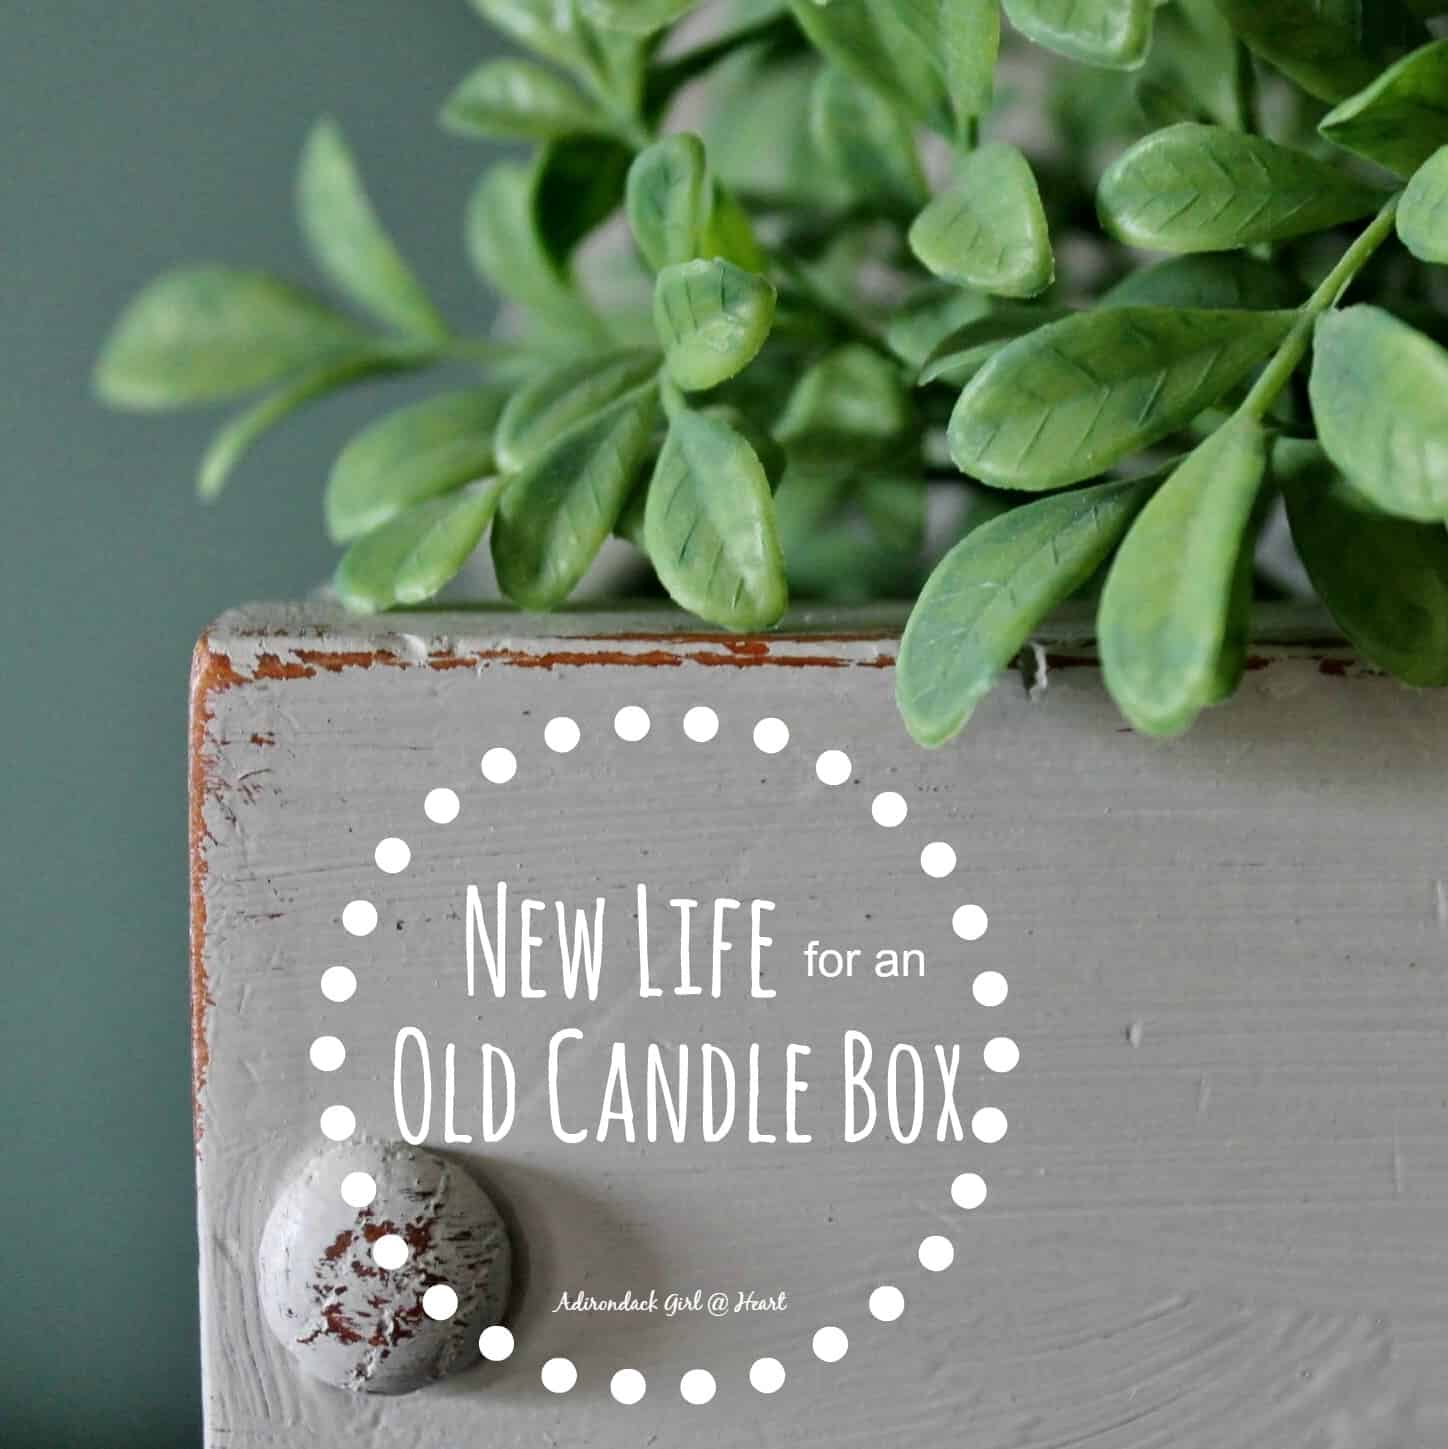 New Life for an old Vxintage Candle bo